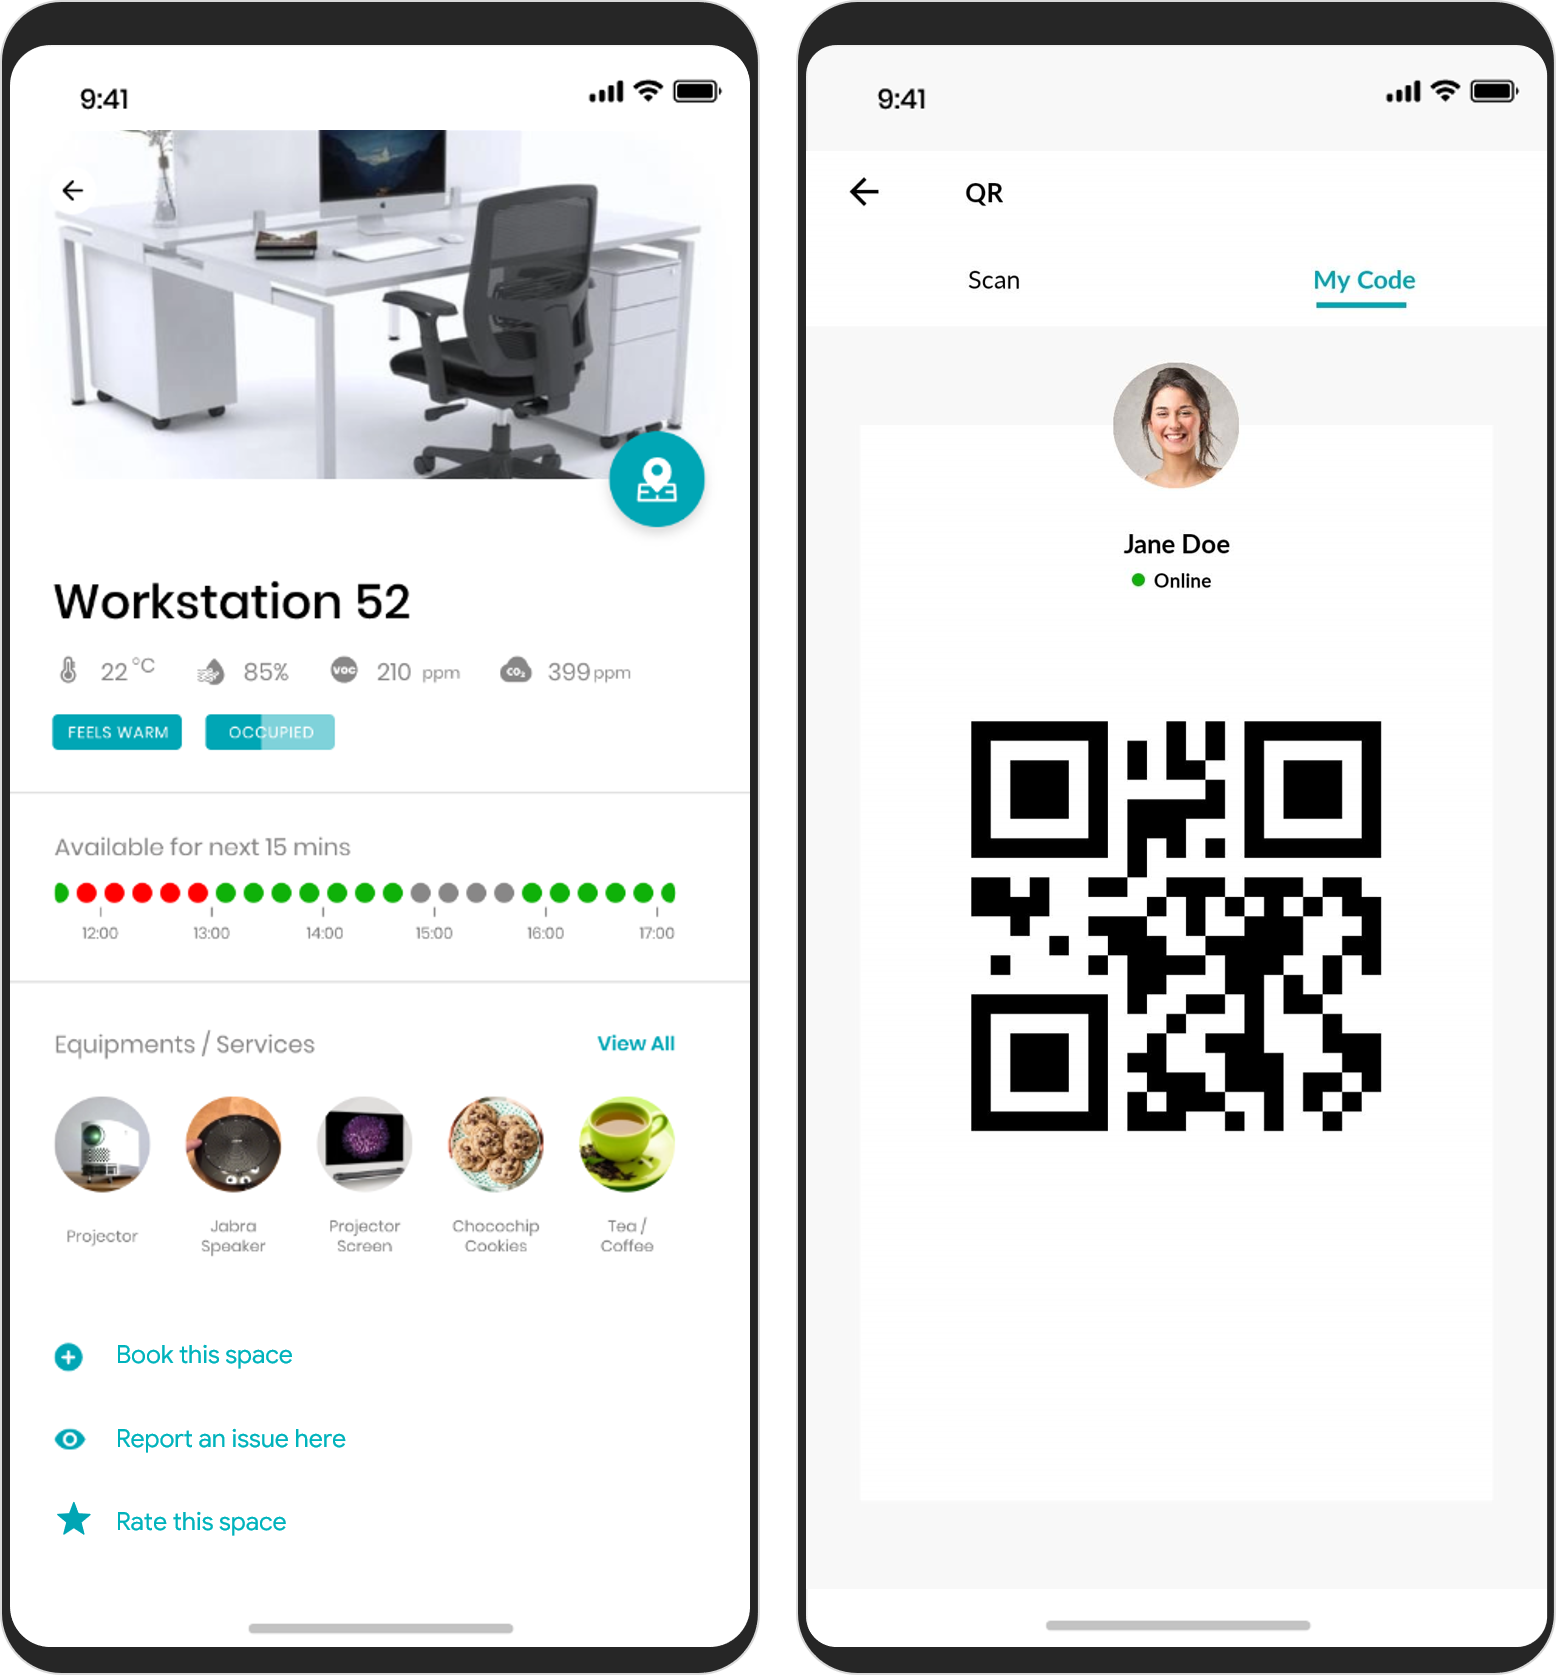 Room booking app and digital workplace assistant